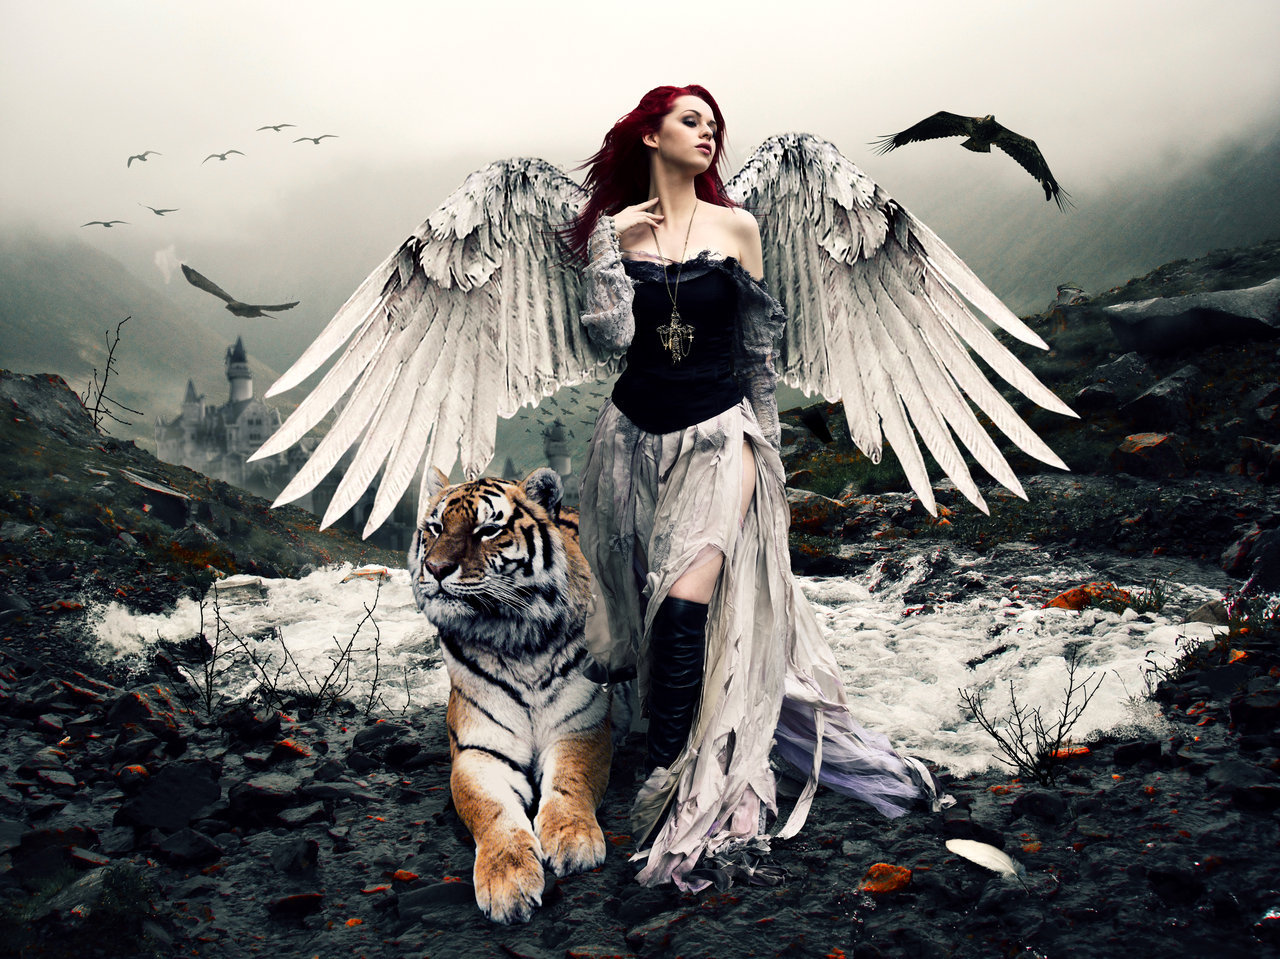 21584 download wallpaper Animals, People, Girls, Fantasy, Angels, Tigers screensavers and pictures for free